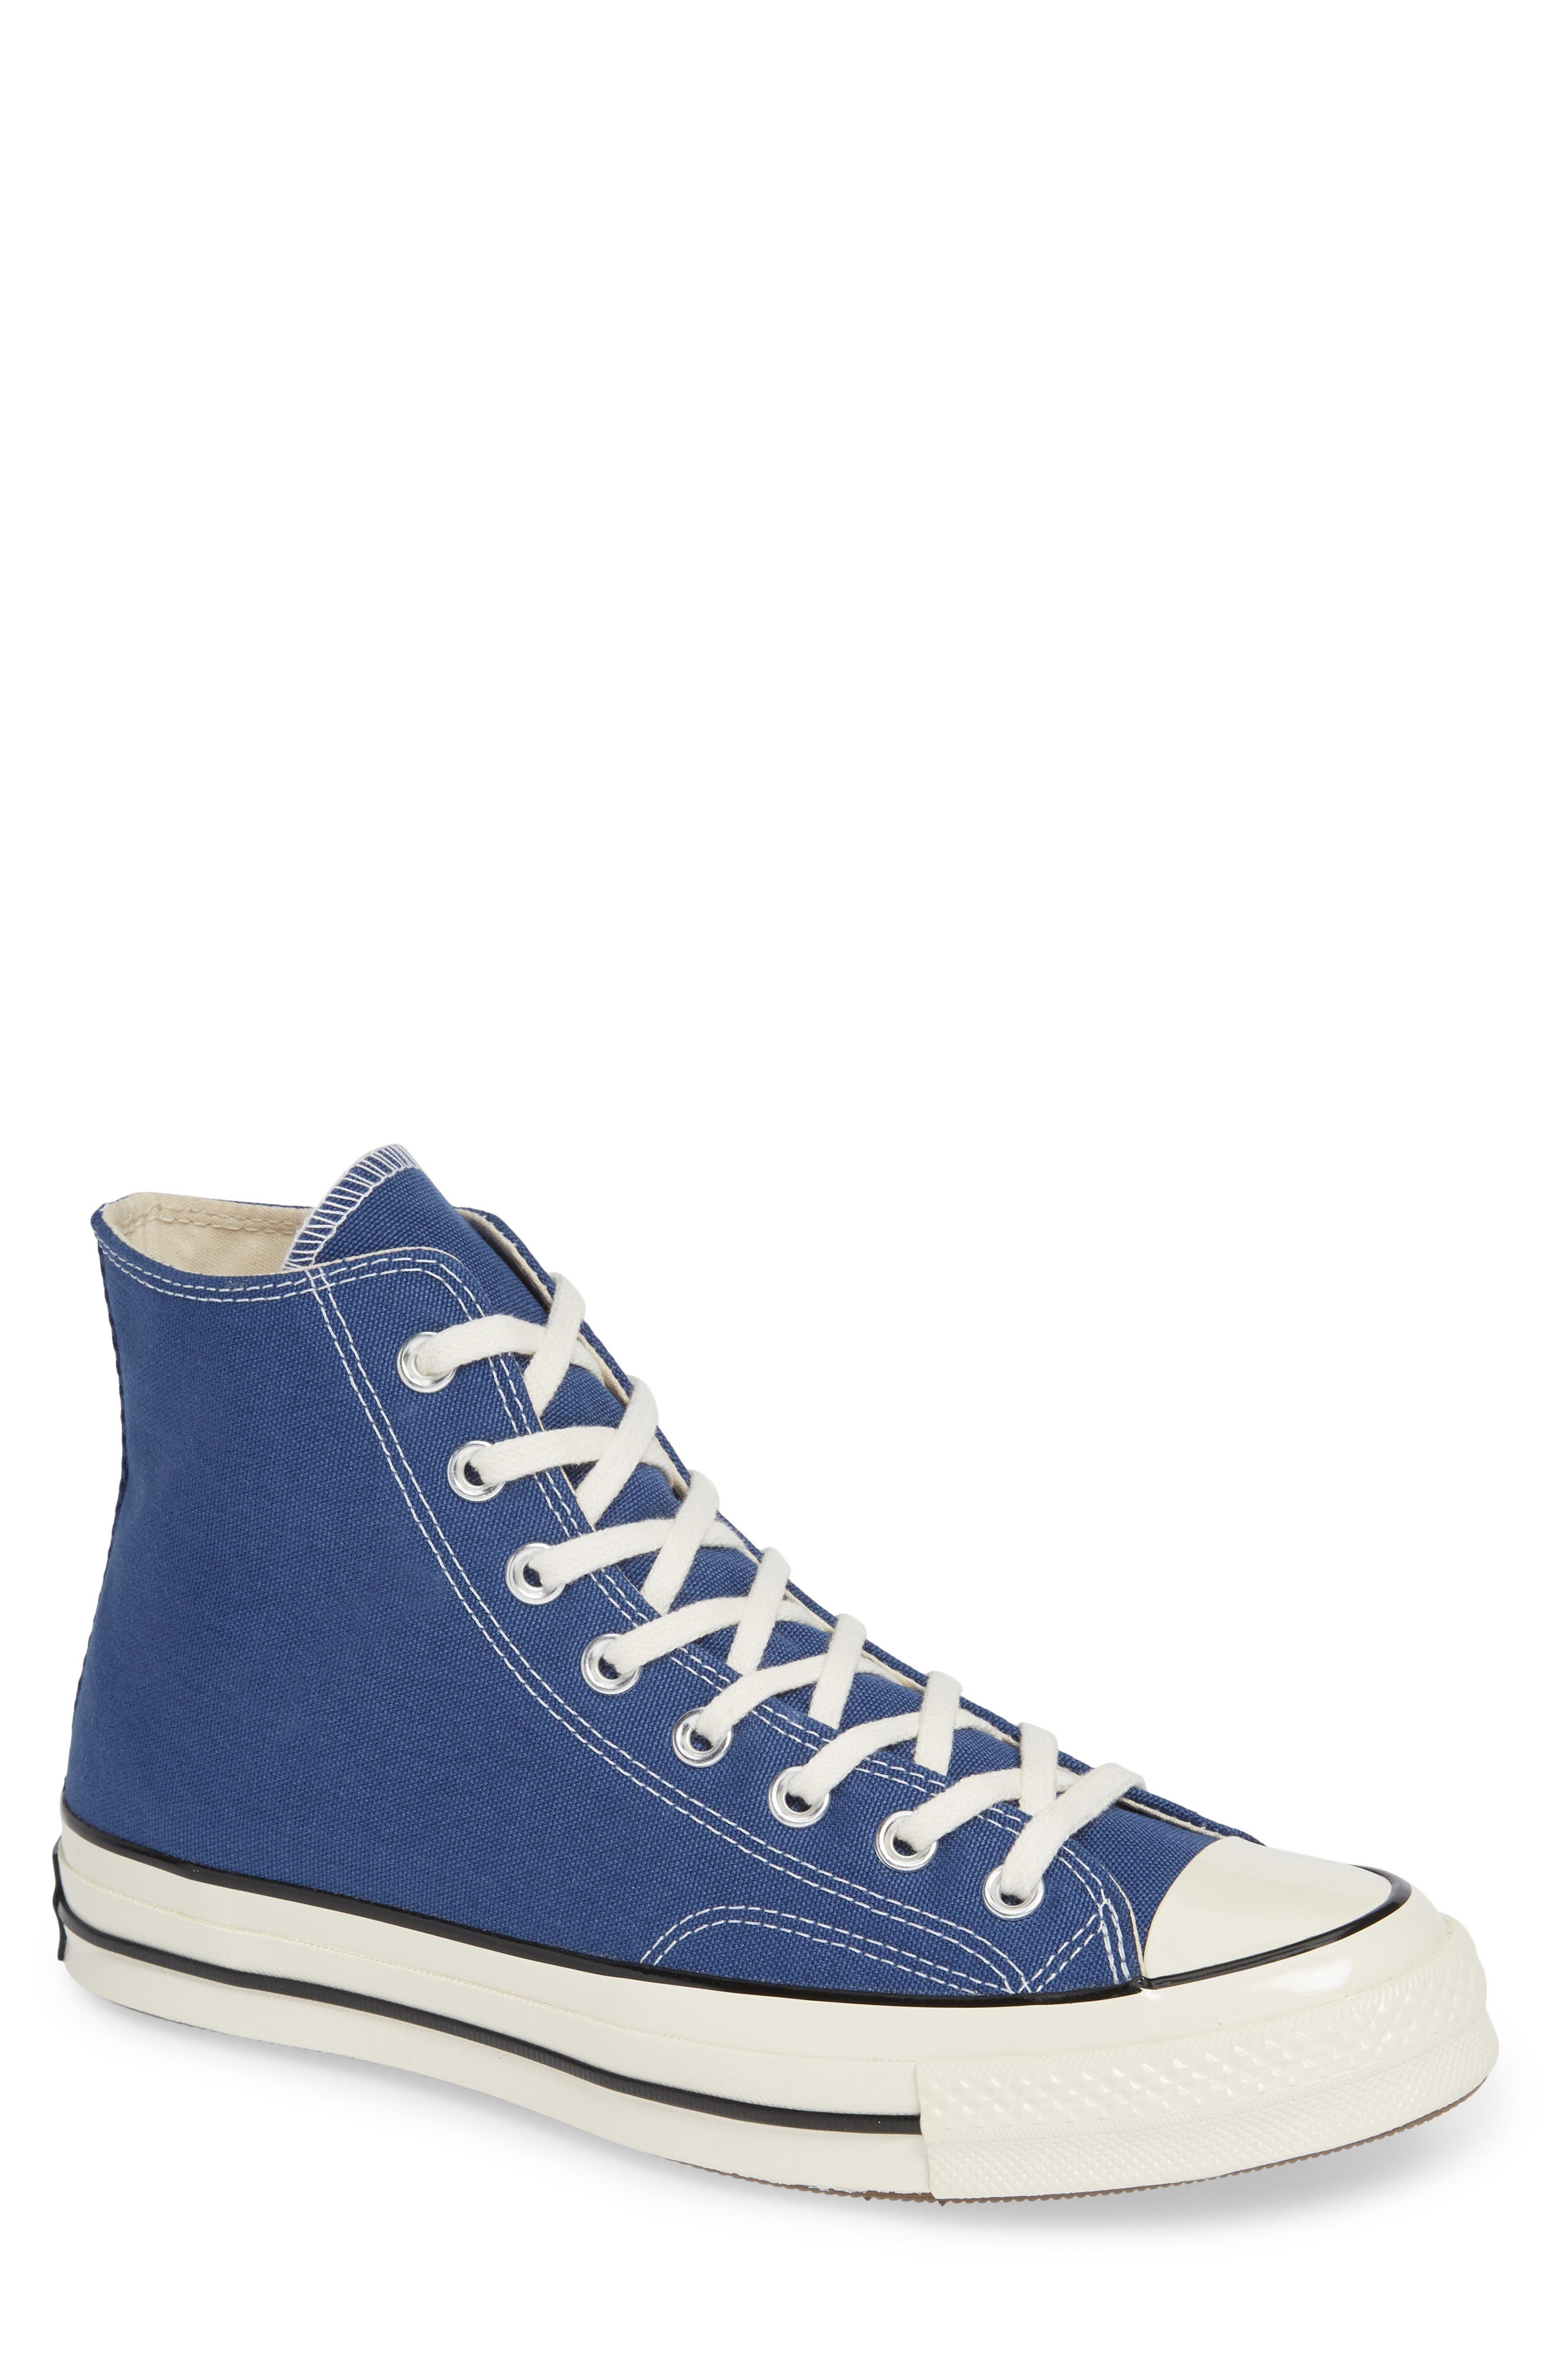 CONVERSE, Chuck Taylor<sup>®</sup> All Star<sup>®</sup> 70 Vintage High Top Sneaker, Main thumbnail 1, color, TRUE NAVY/ BLACK